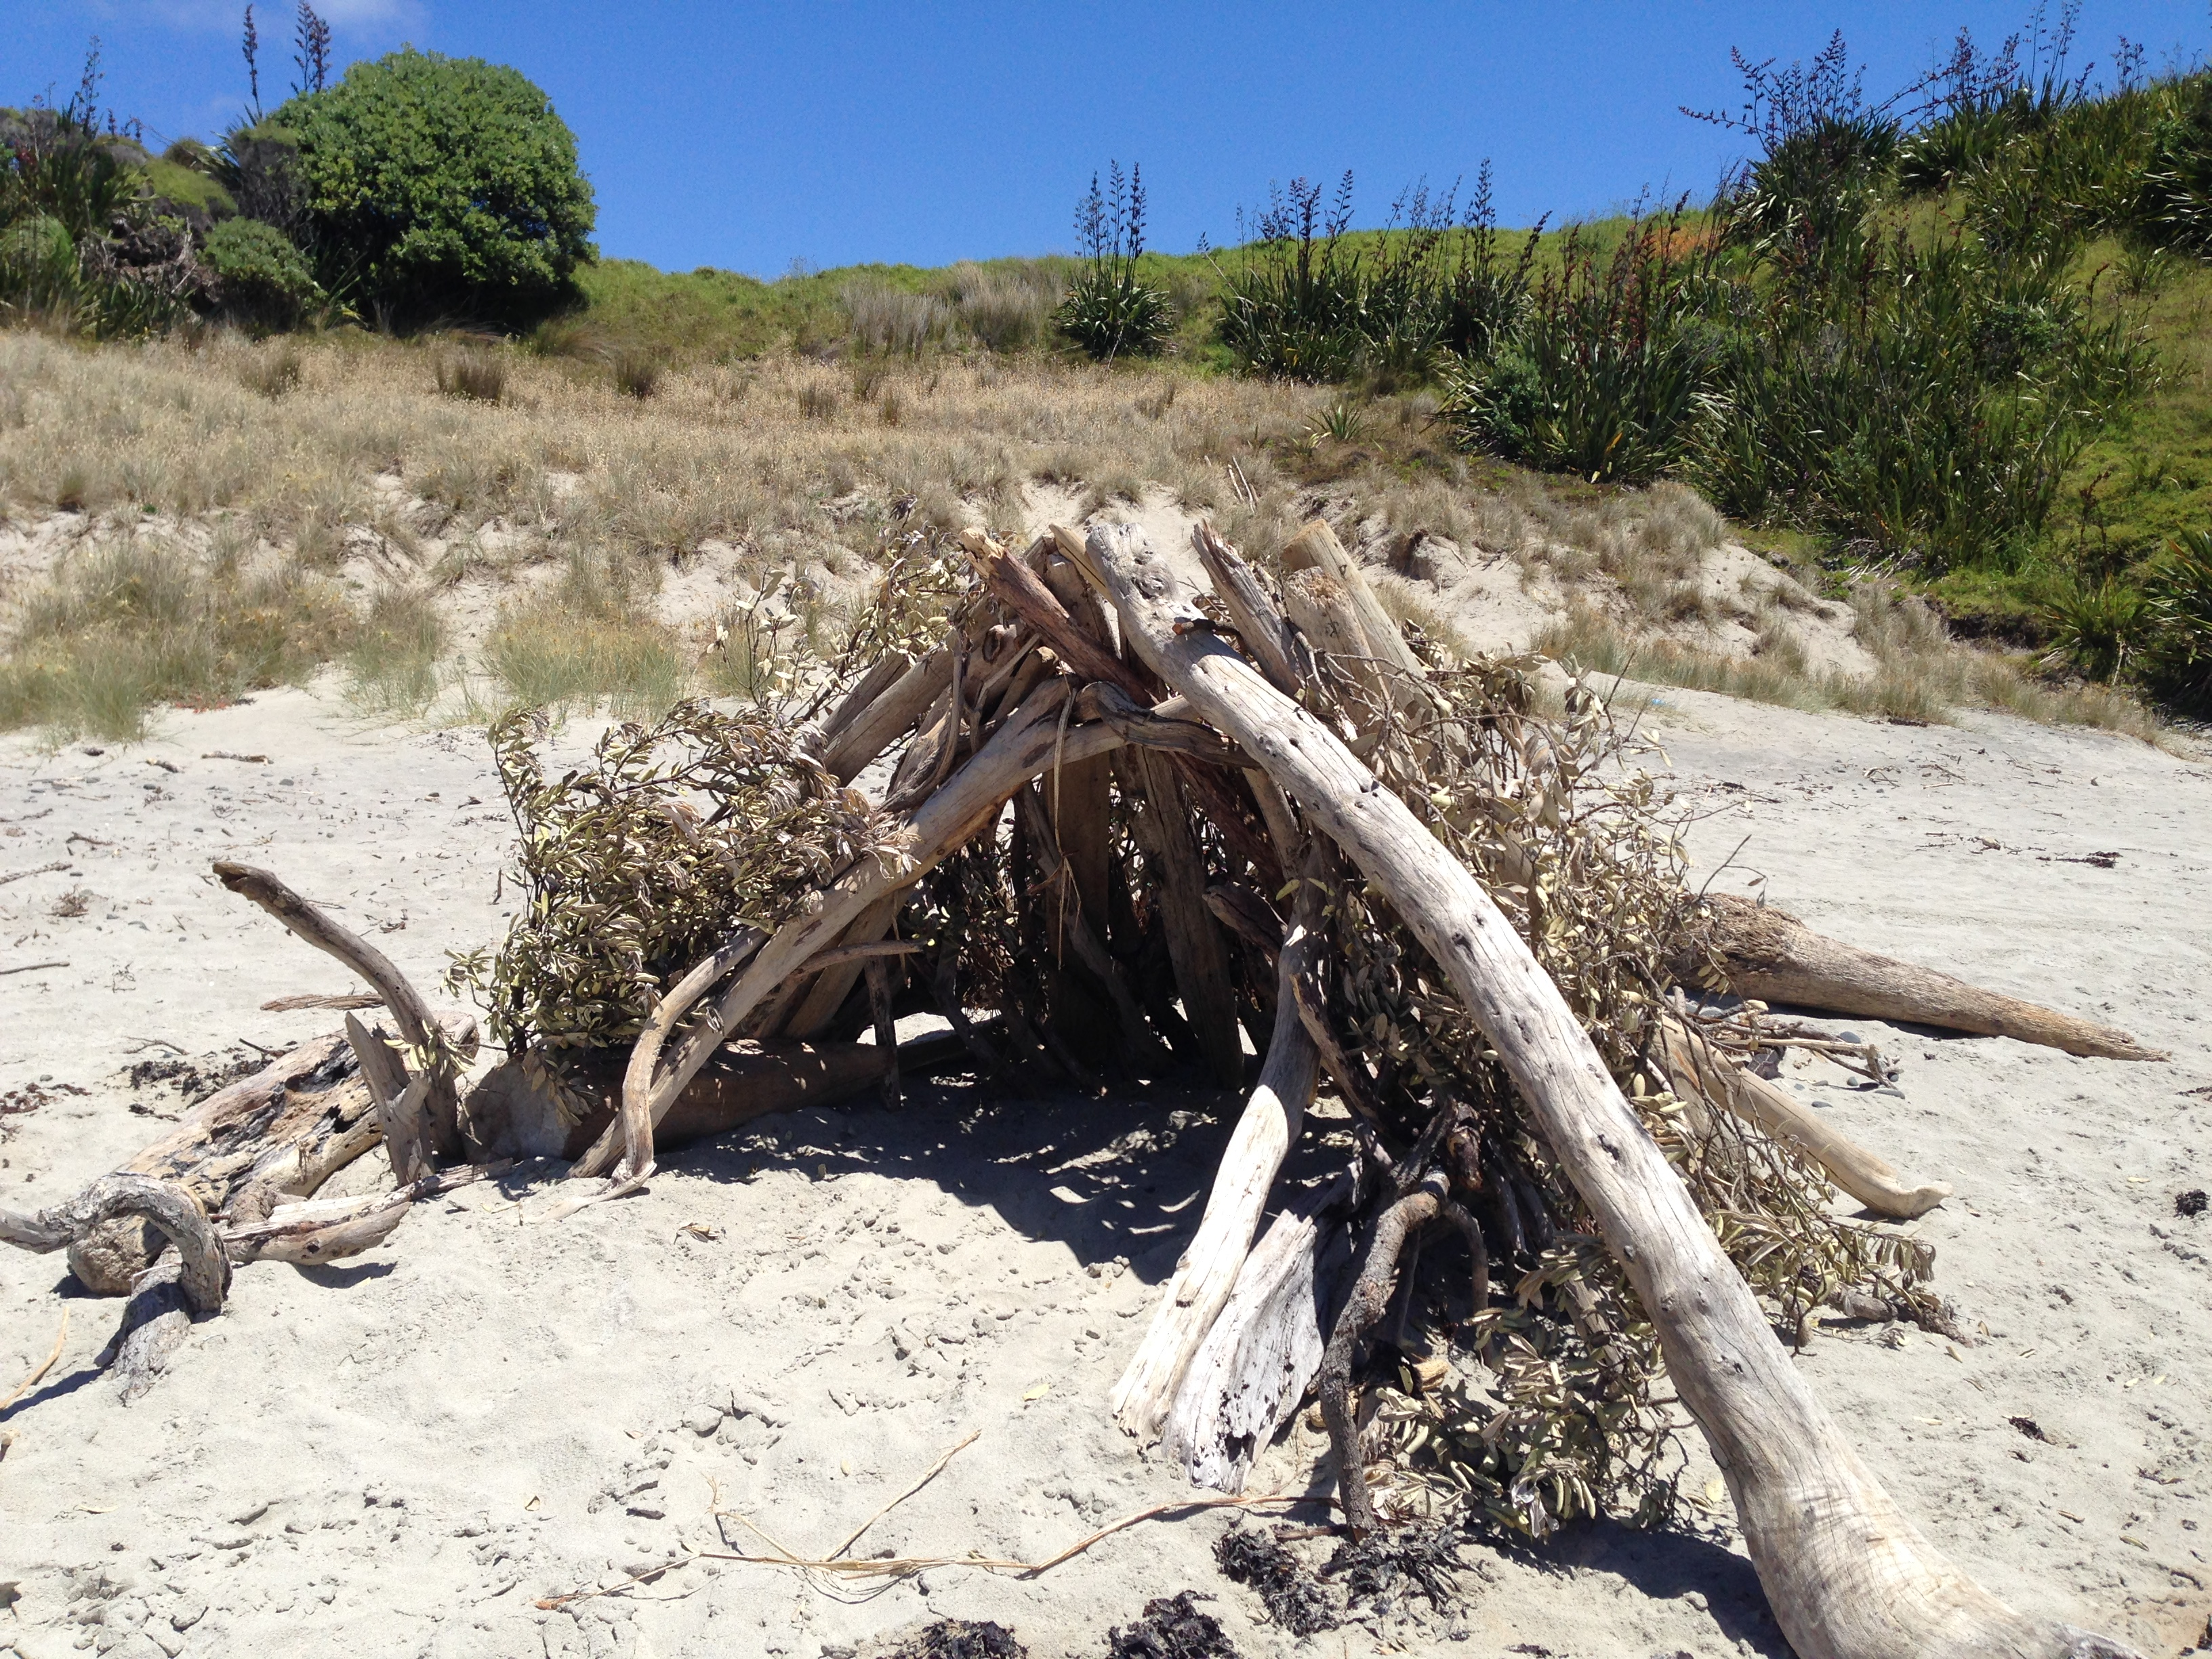 Old tree branches made into a shade-fort on the beach.